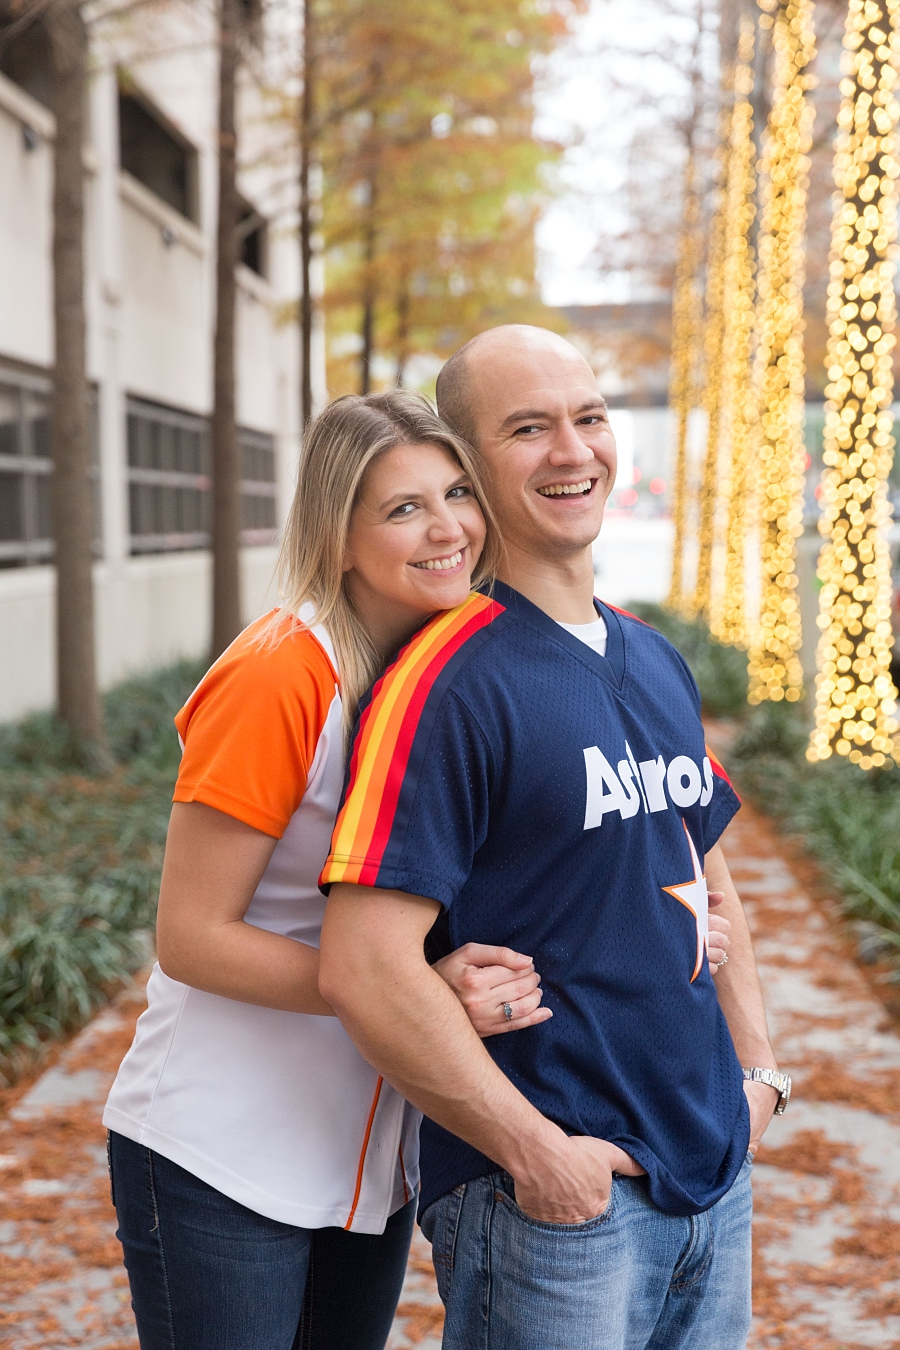 Stacy-Anderson-Photography-Houston-Astros-Baseball-engagement-photo_0045.jpg